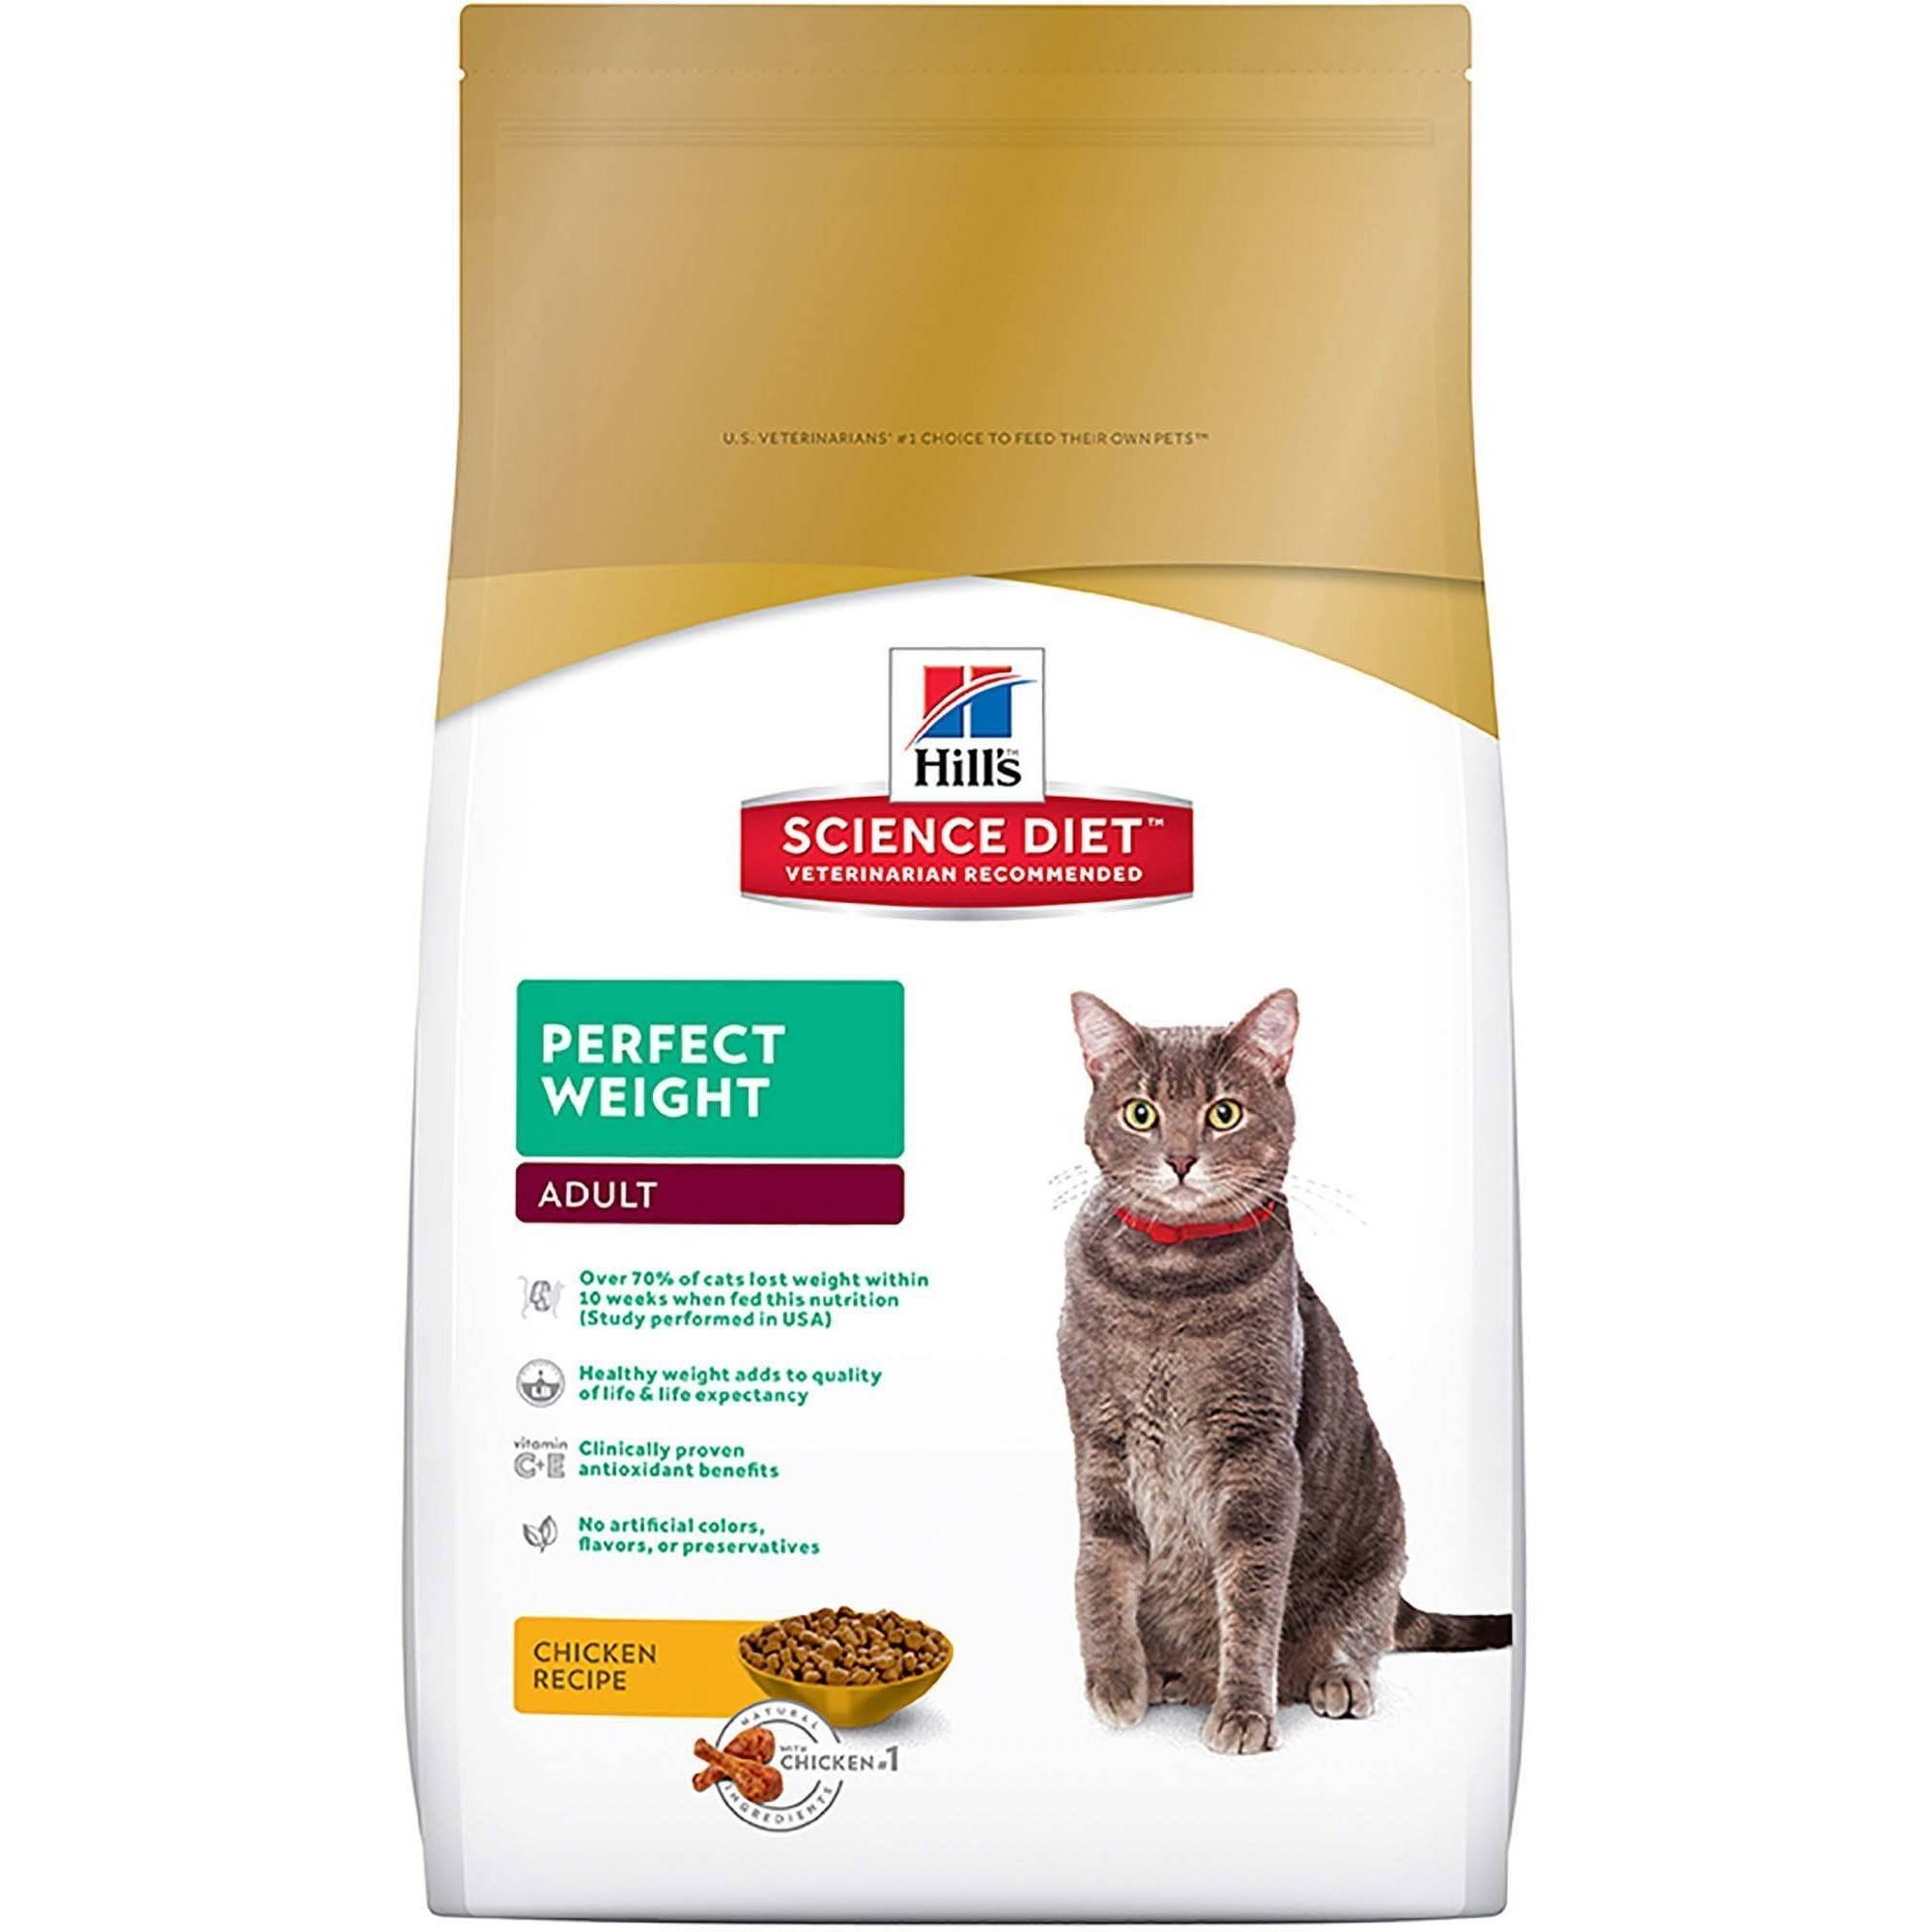 Hill's Science Diet Adult Perfect Weight Chicken Recipe Dry Cat Food, 15 lb bag by HILL'S PET NUTRITION, INC.